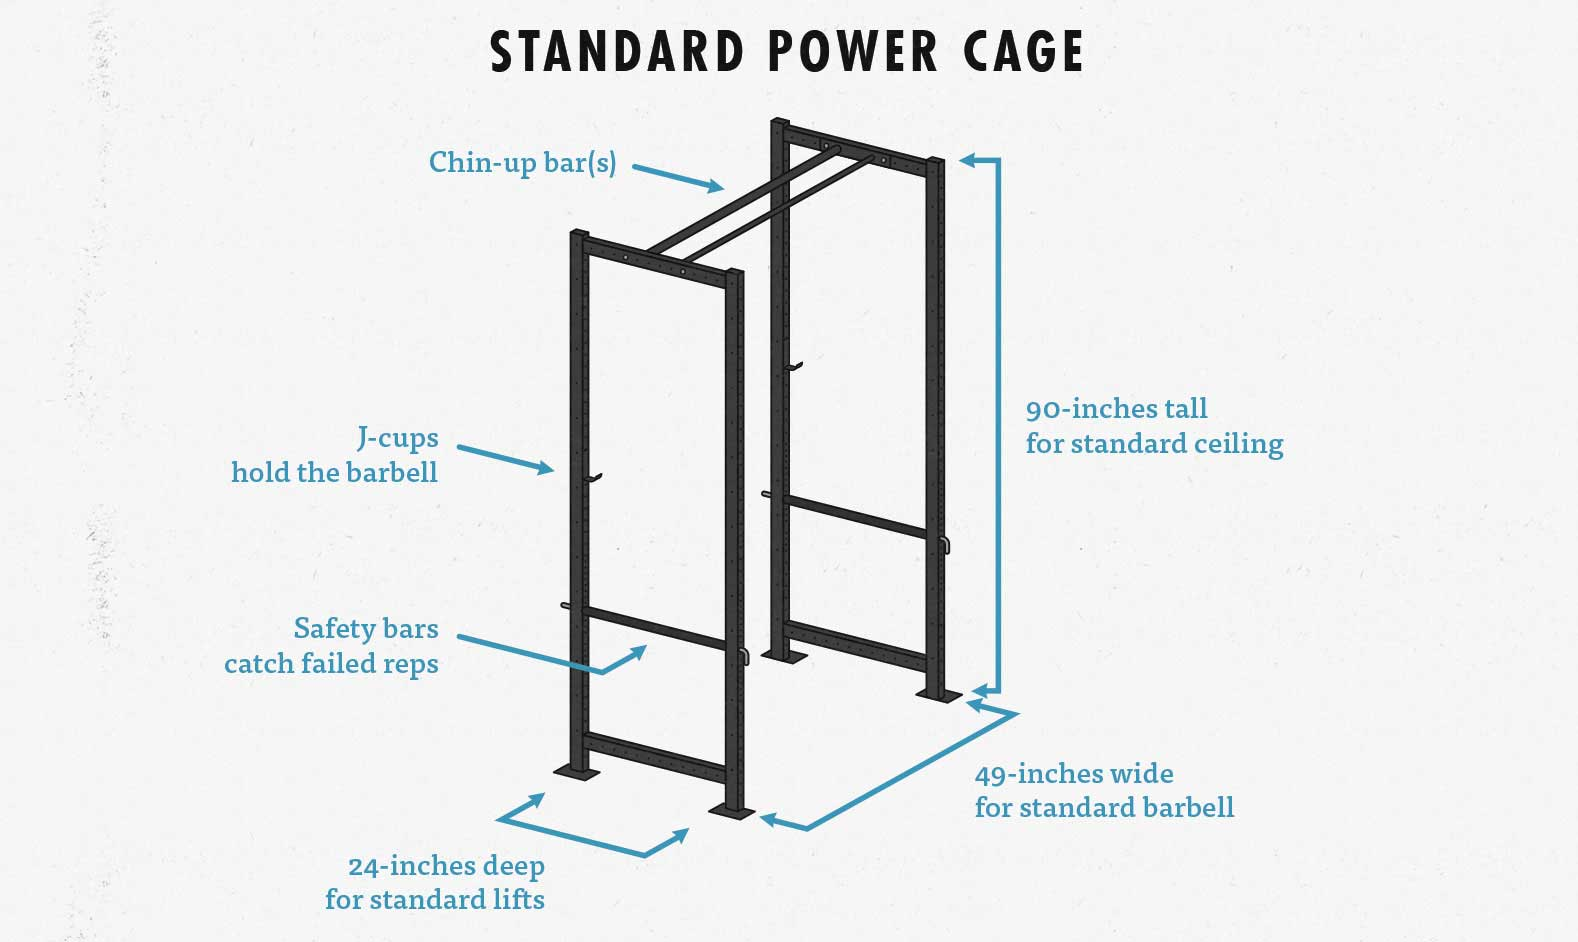 Building a barbell home gym: what's the best power cage to buy for building muscle and bulking up